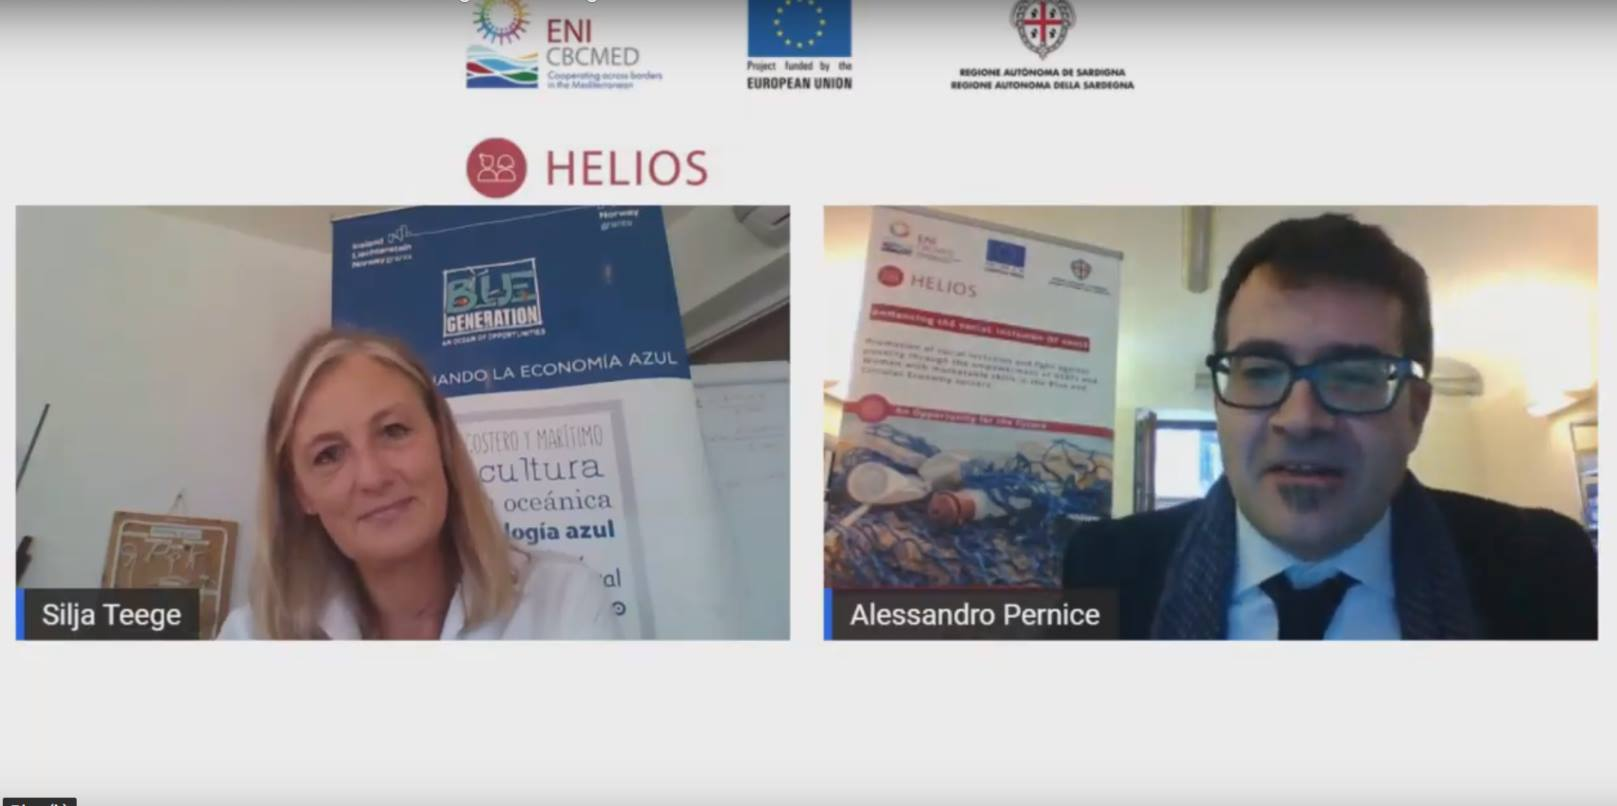 SeaTeach presented the BlueGeneration project at the Helios Project webinar